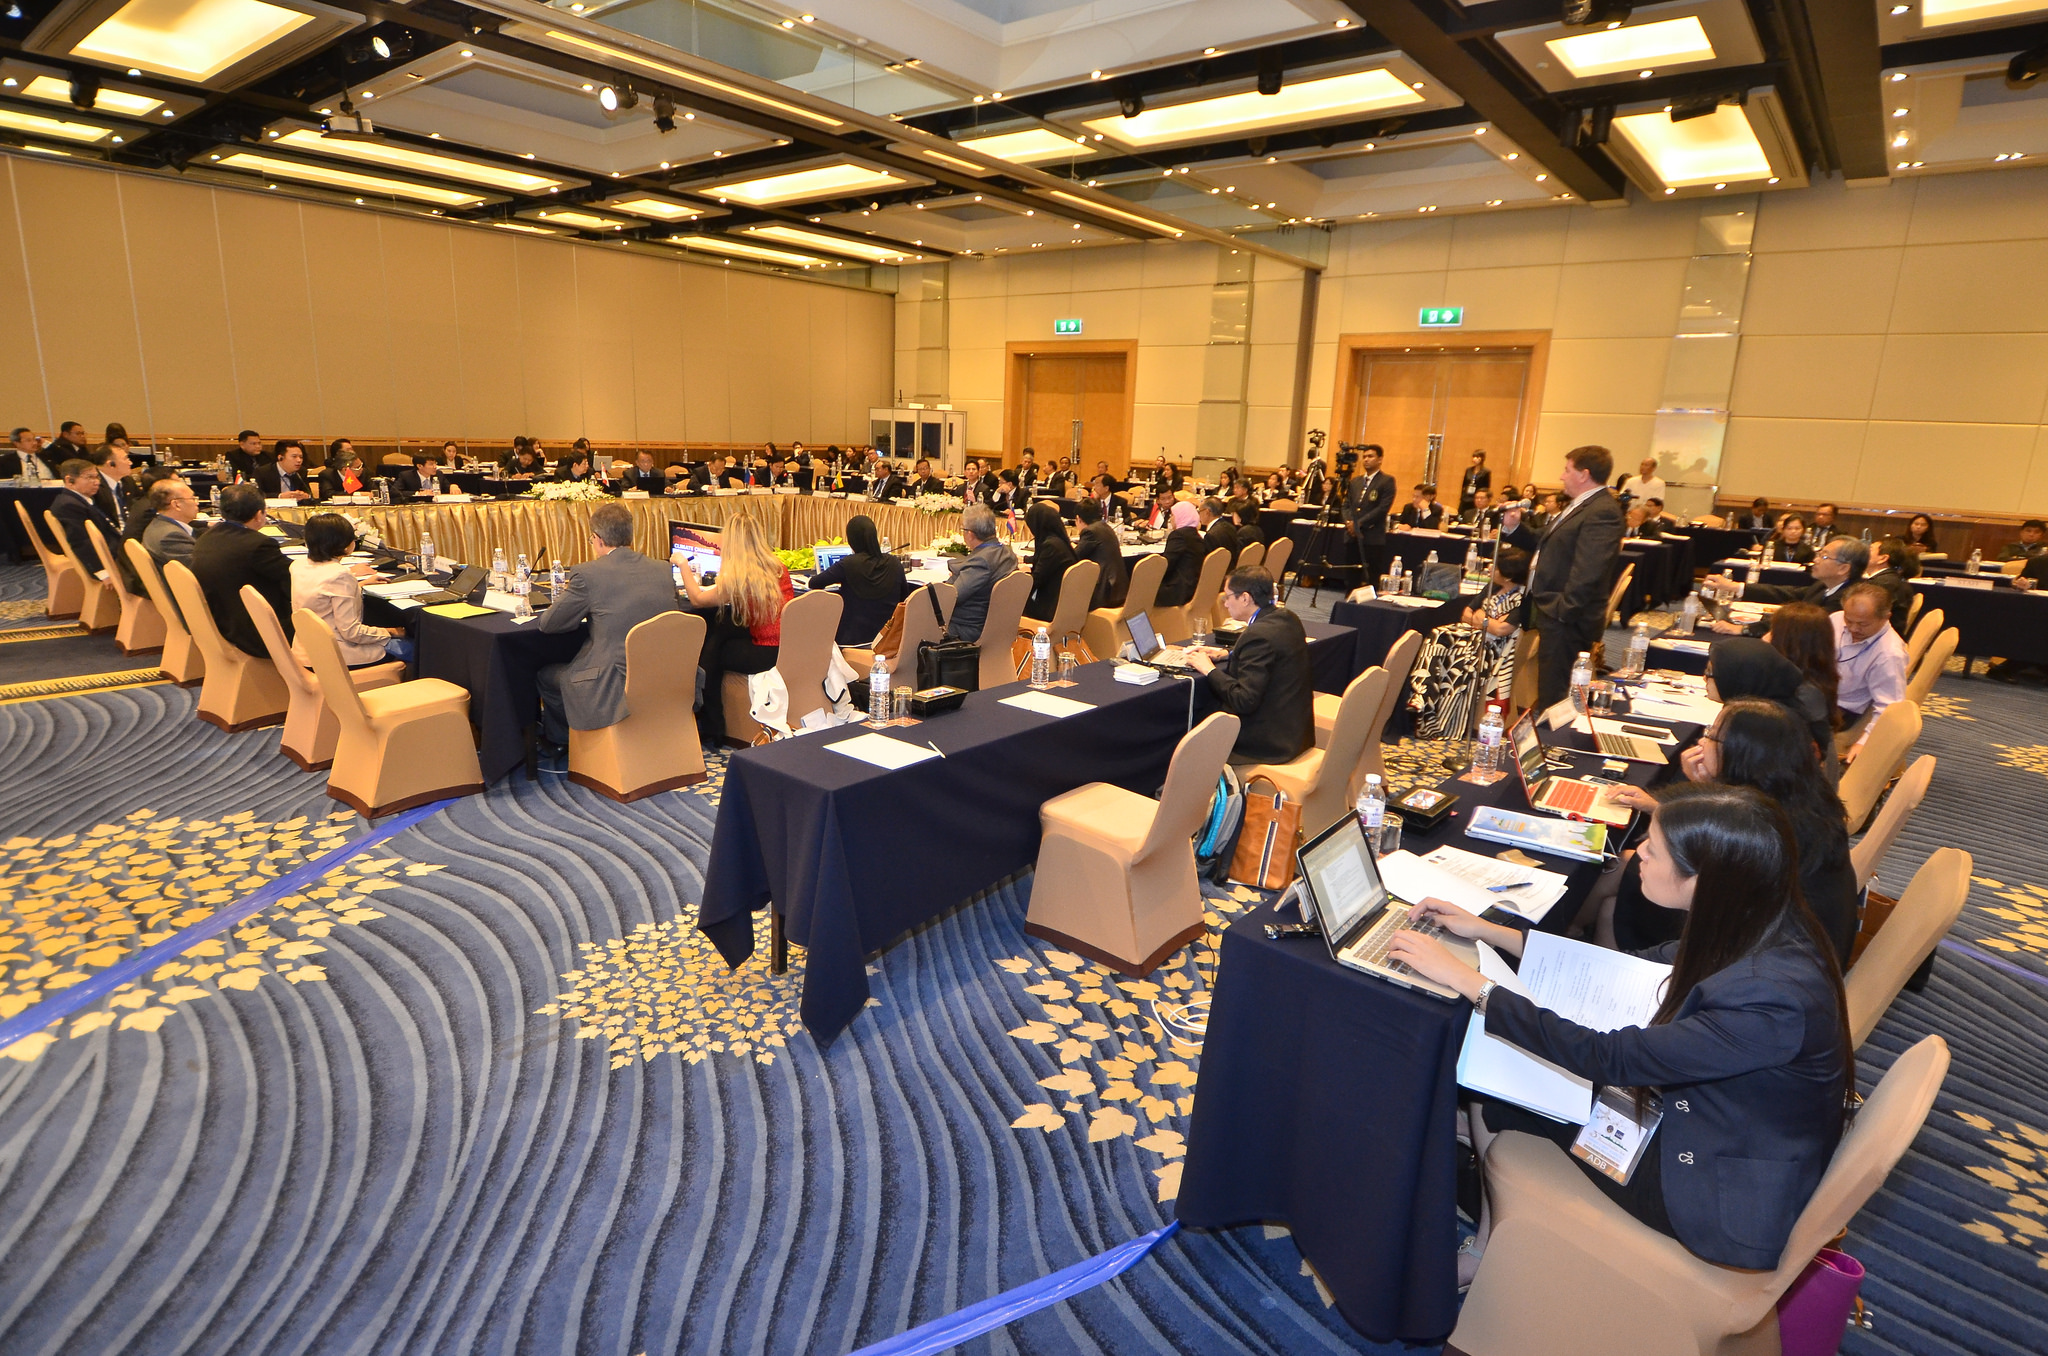 Photo of participants during the Third ASEAN Chief Justices Roundtable on Environment, held in Bangkok, Thailand, on 5 - 18 November 2013.